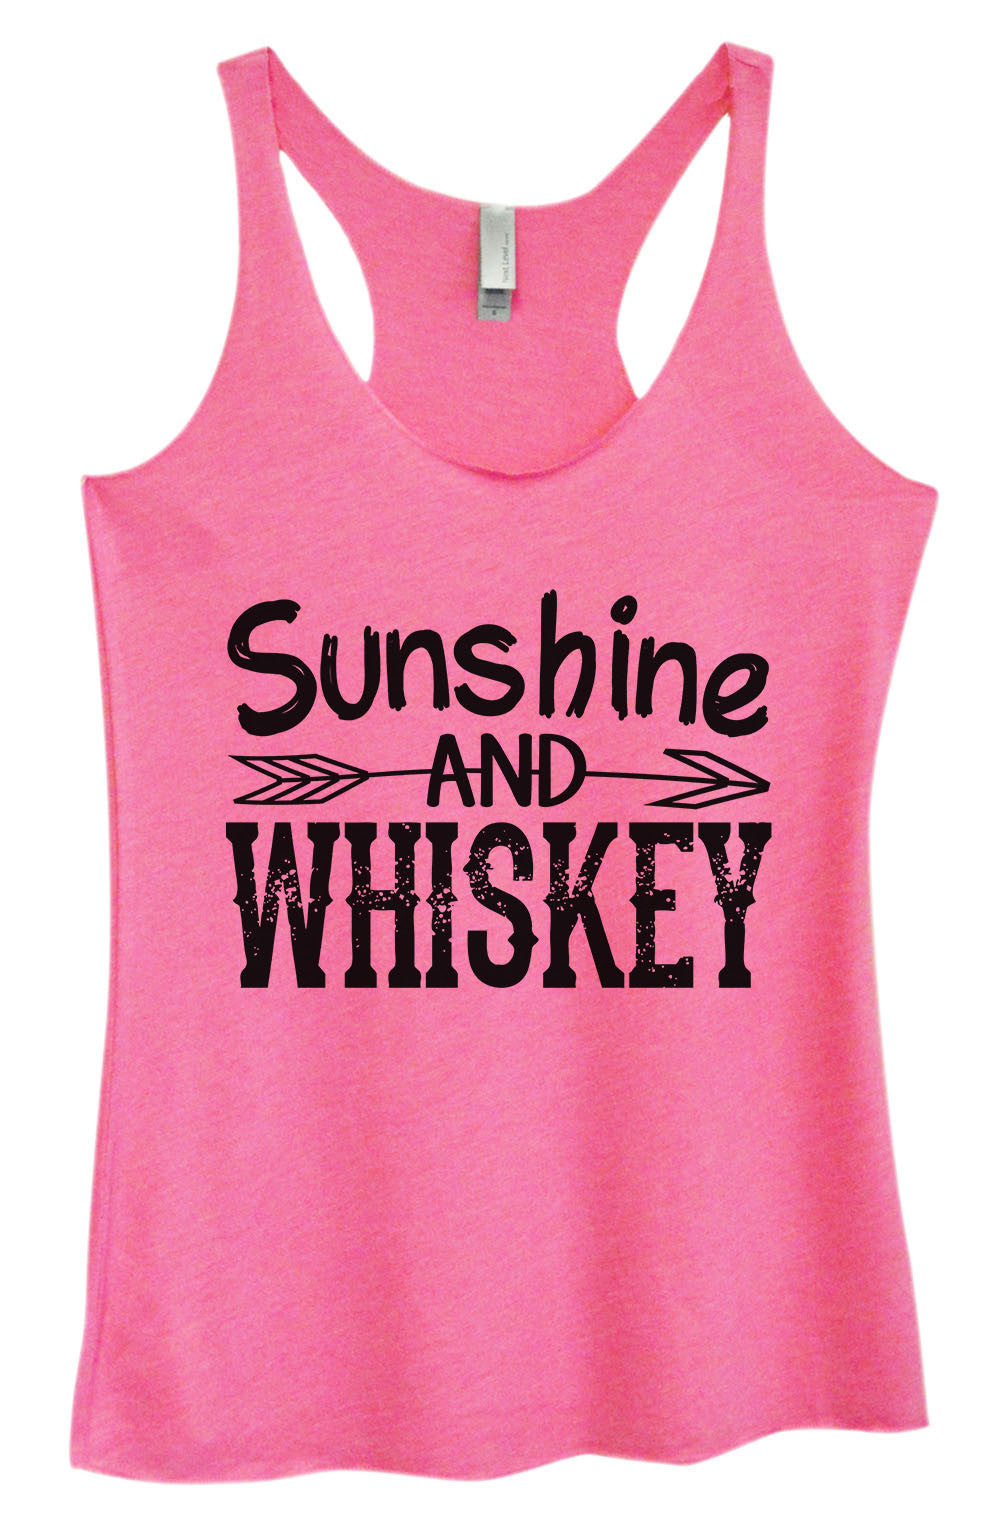 Womens Fashion Triblend Tank Top - Sunshine And Whiskey - Tri-1406 - Funny Shirts Tank Tops Burnouts and Triblends  - 4